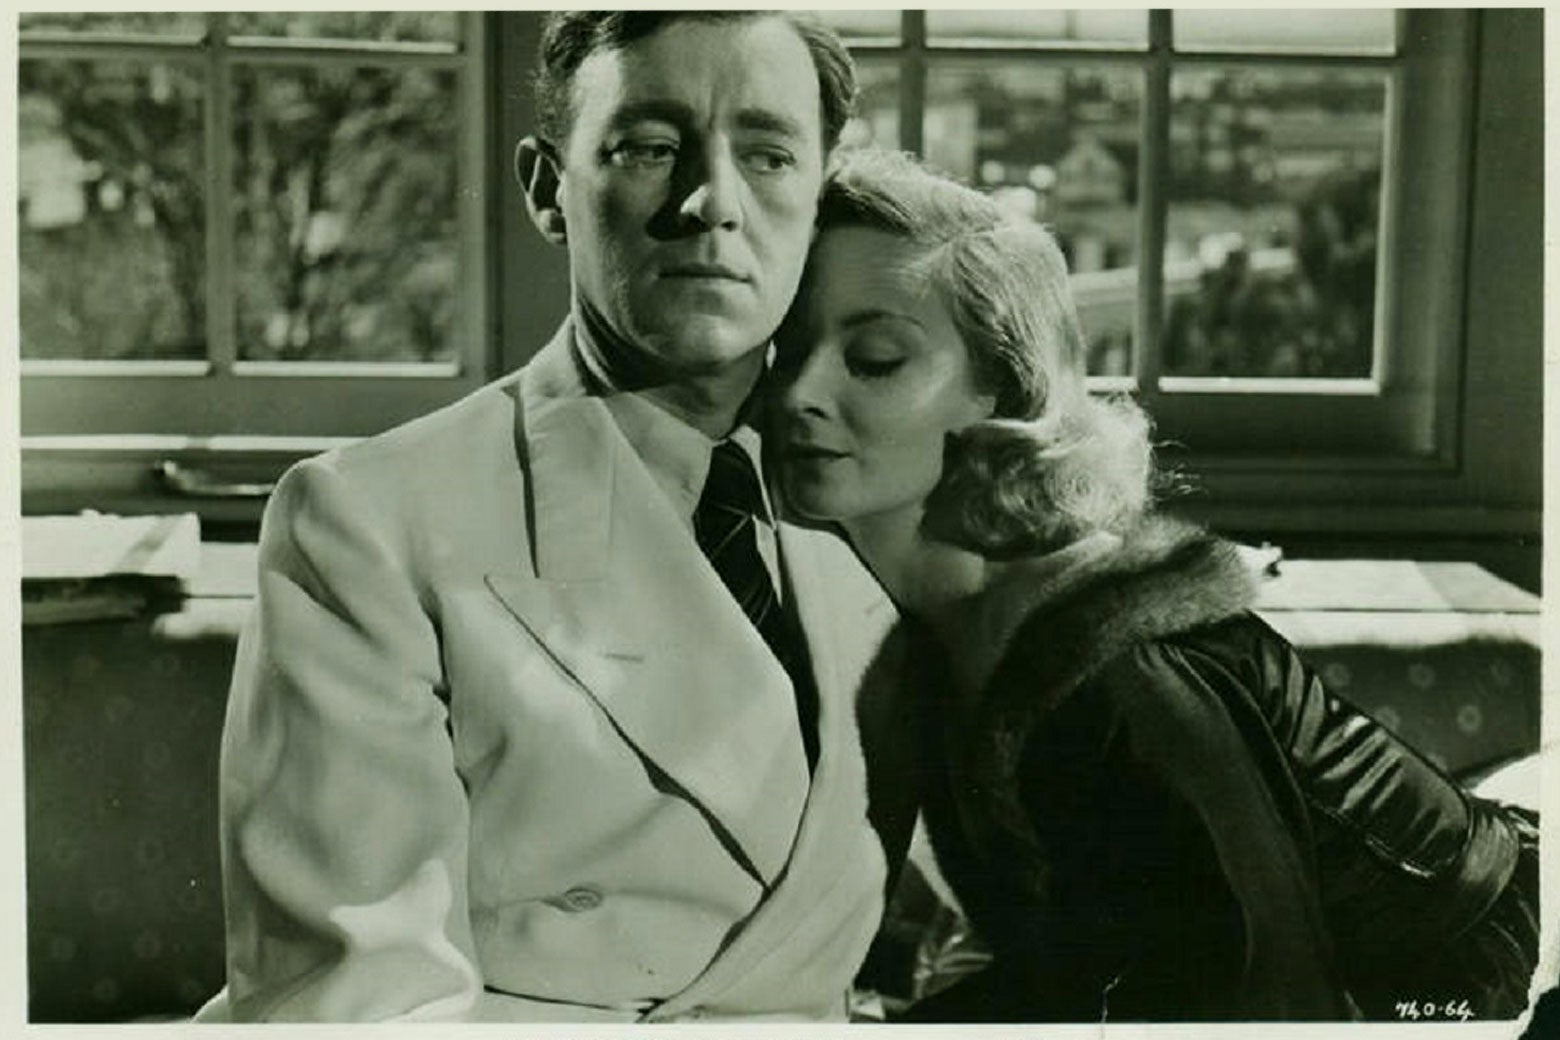 A still image of Alec Guinness and a woman in The Man in the White Suit.